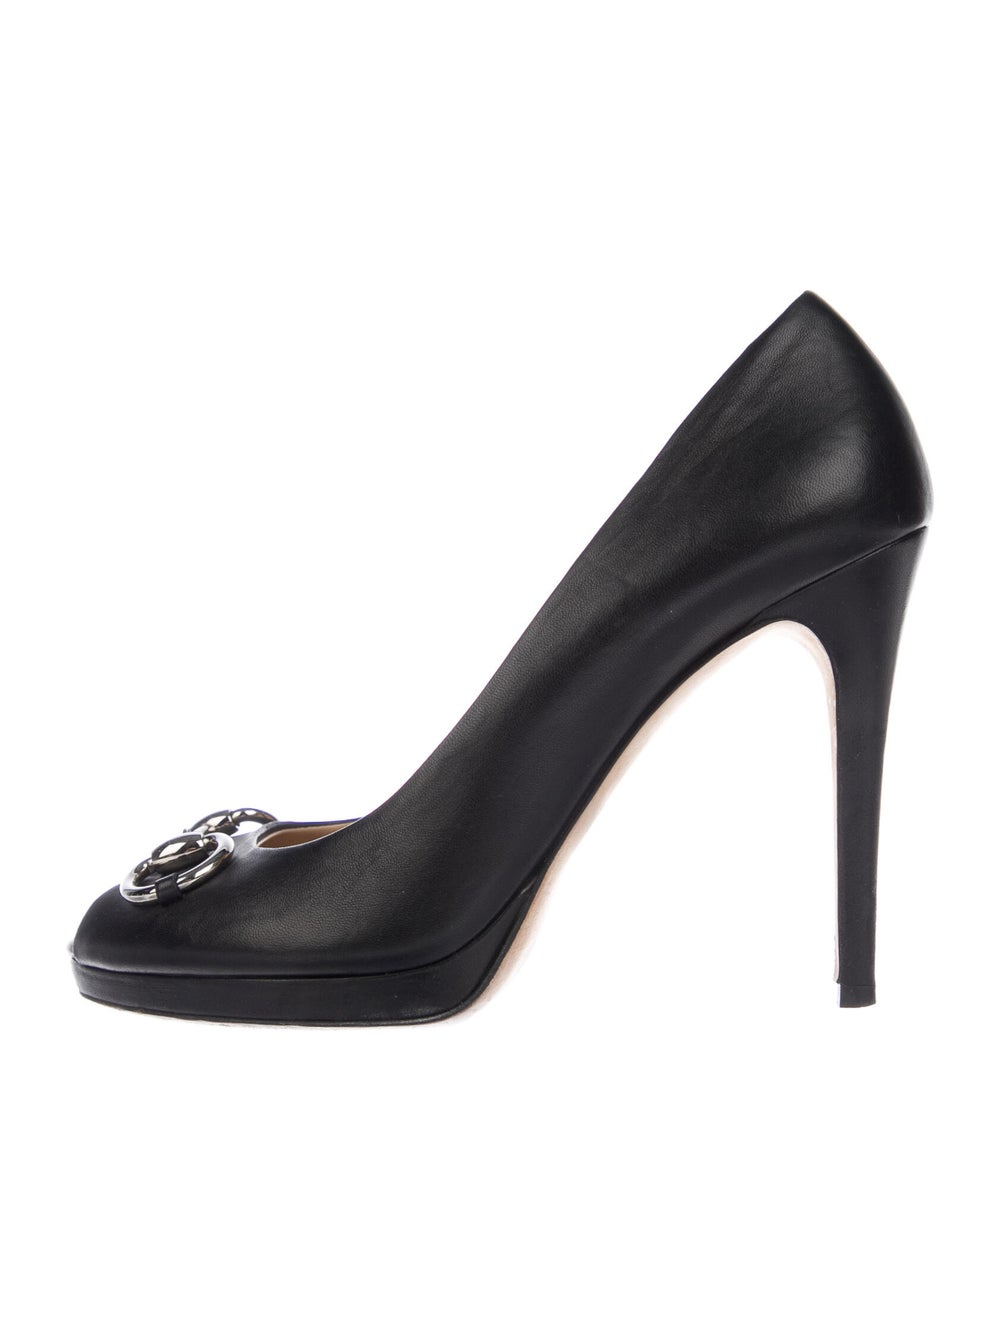 Gucci Horsebit Accent Leather Pumps Black - image 1